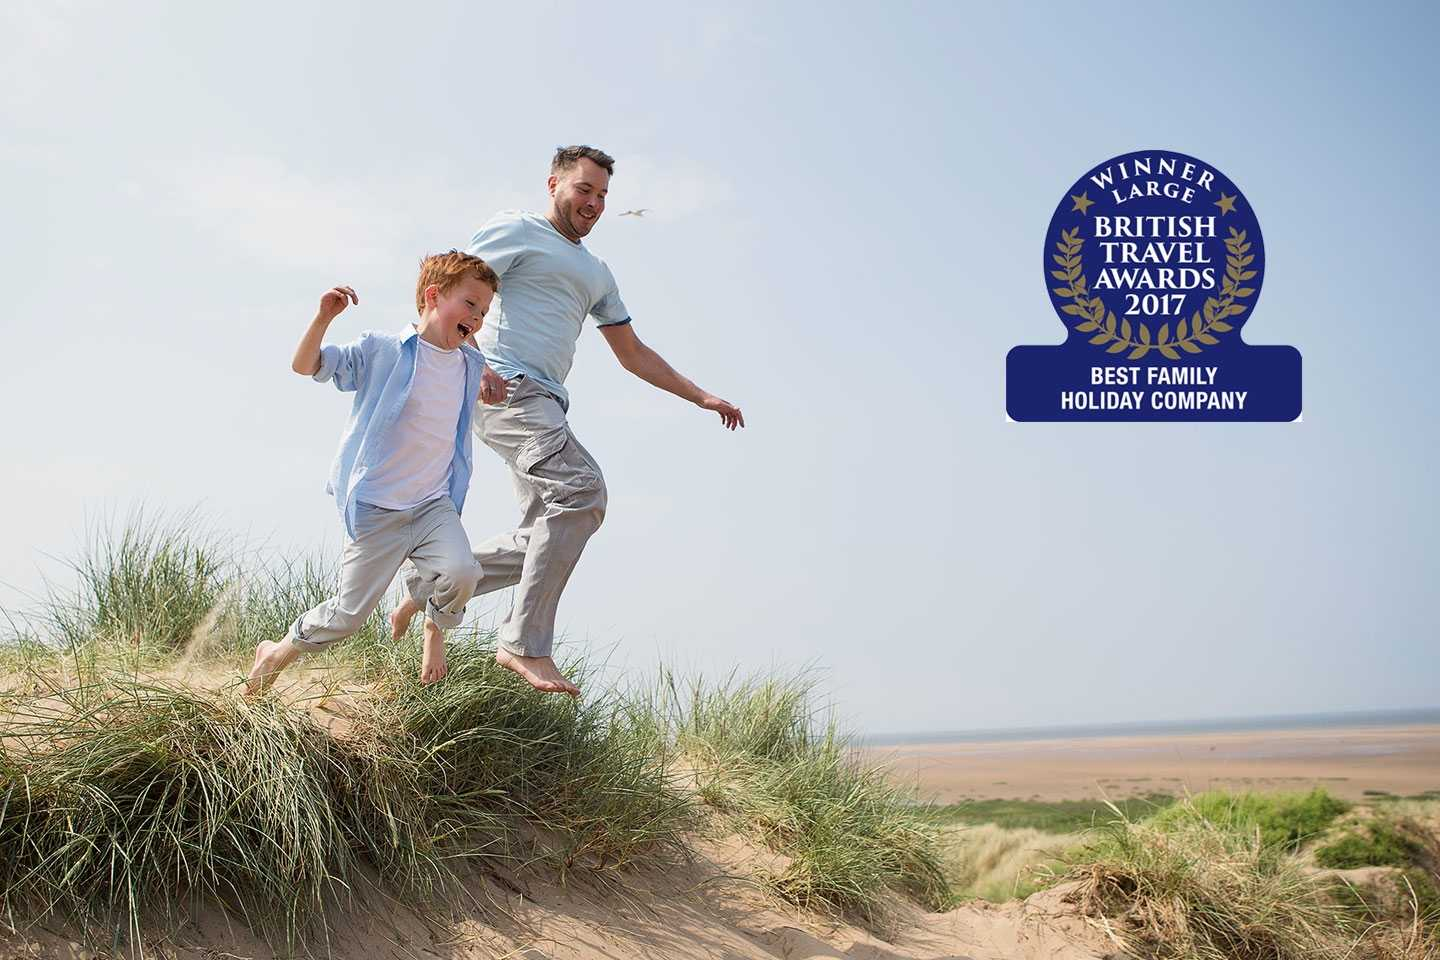 Best Large Family Holiday Company in the British Travel Awards 2017